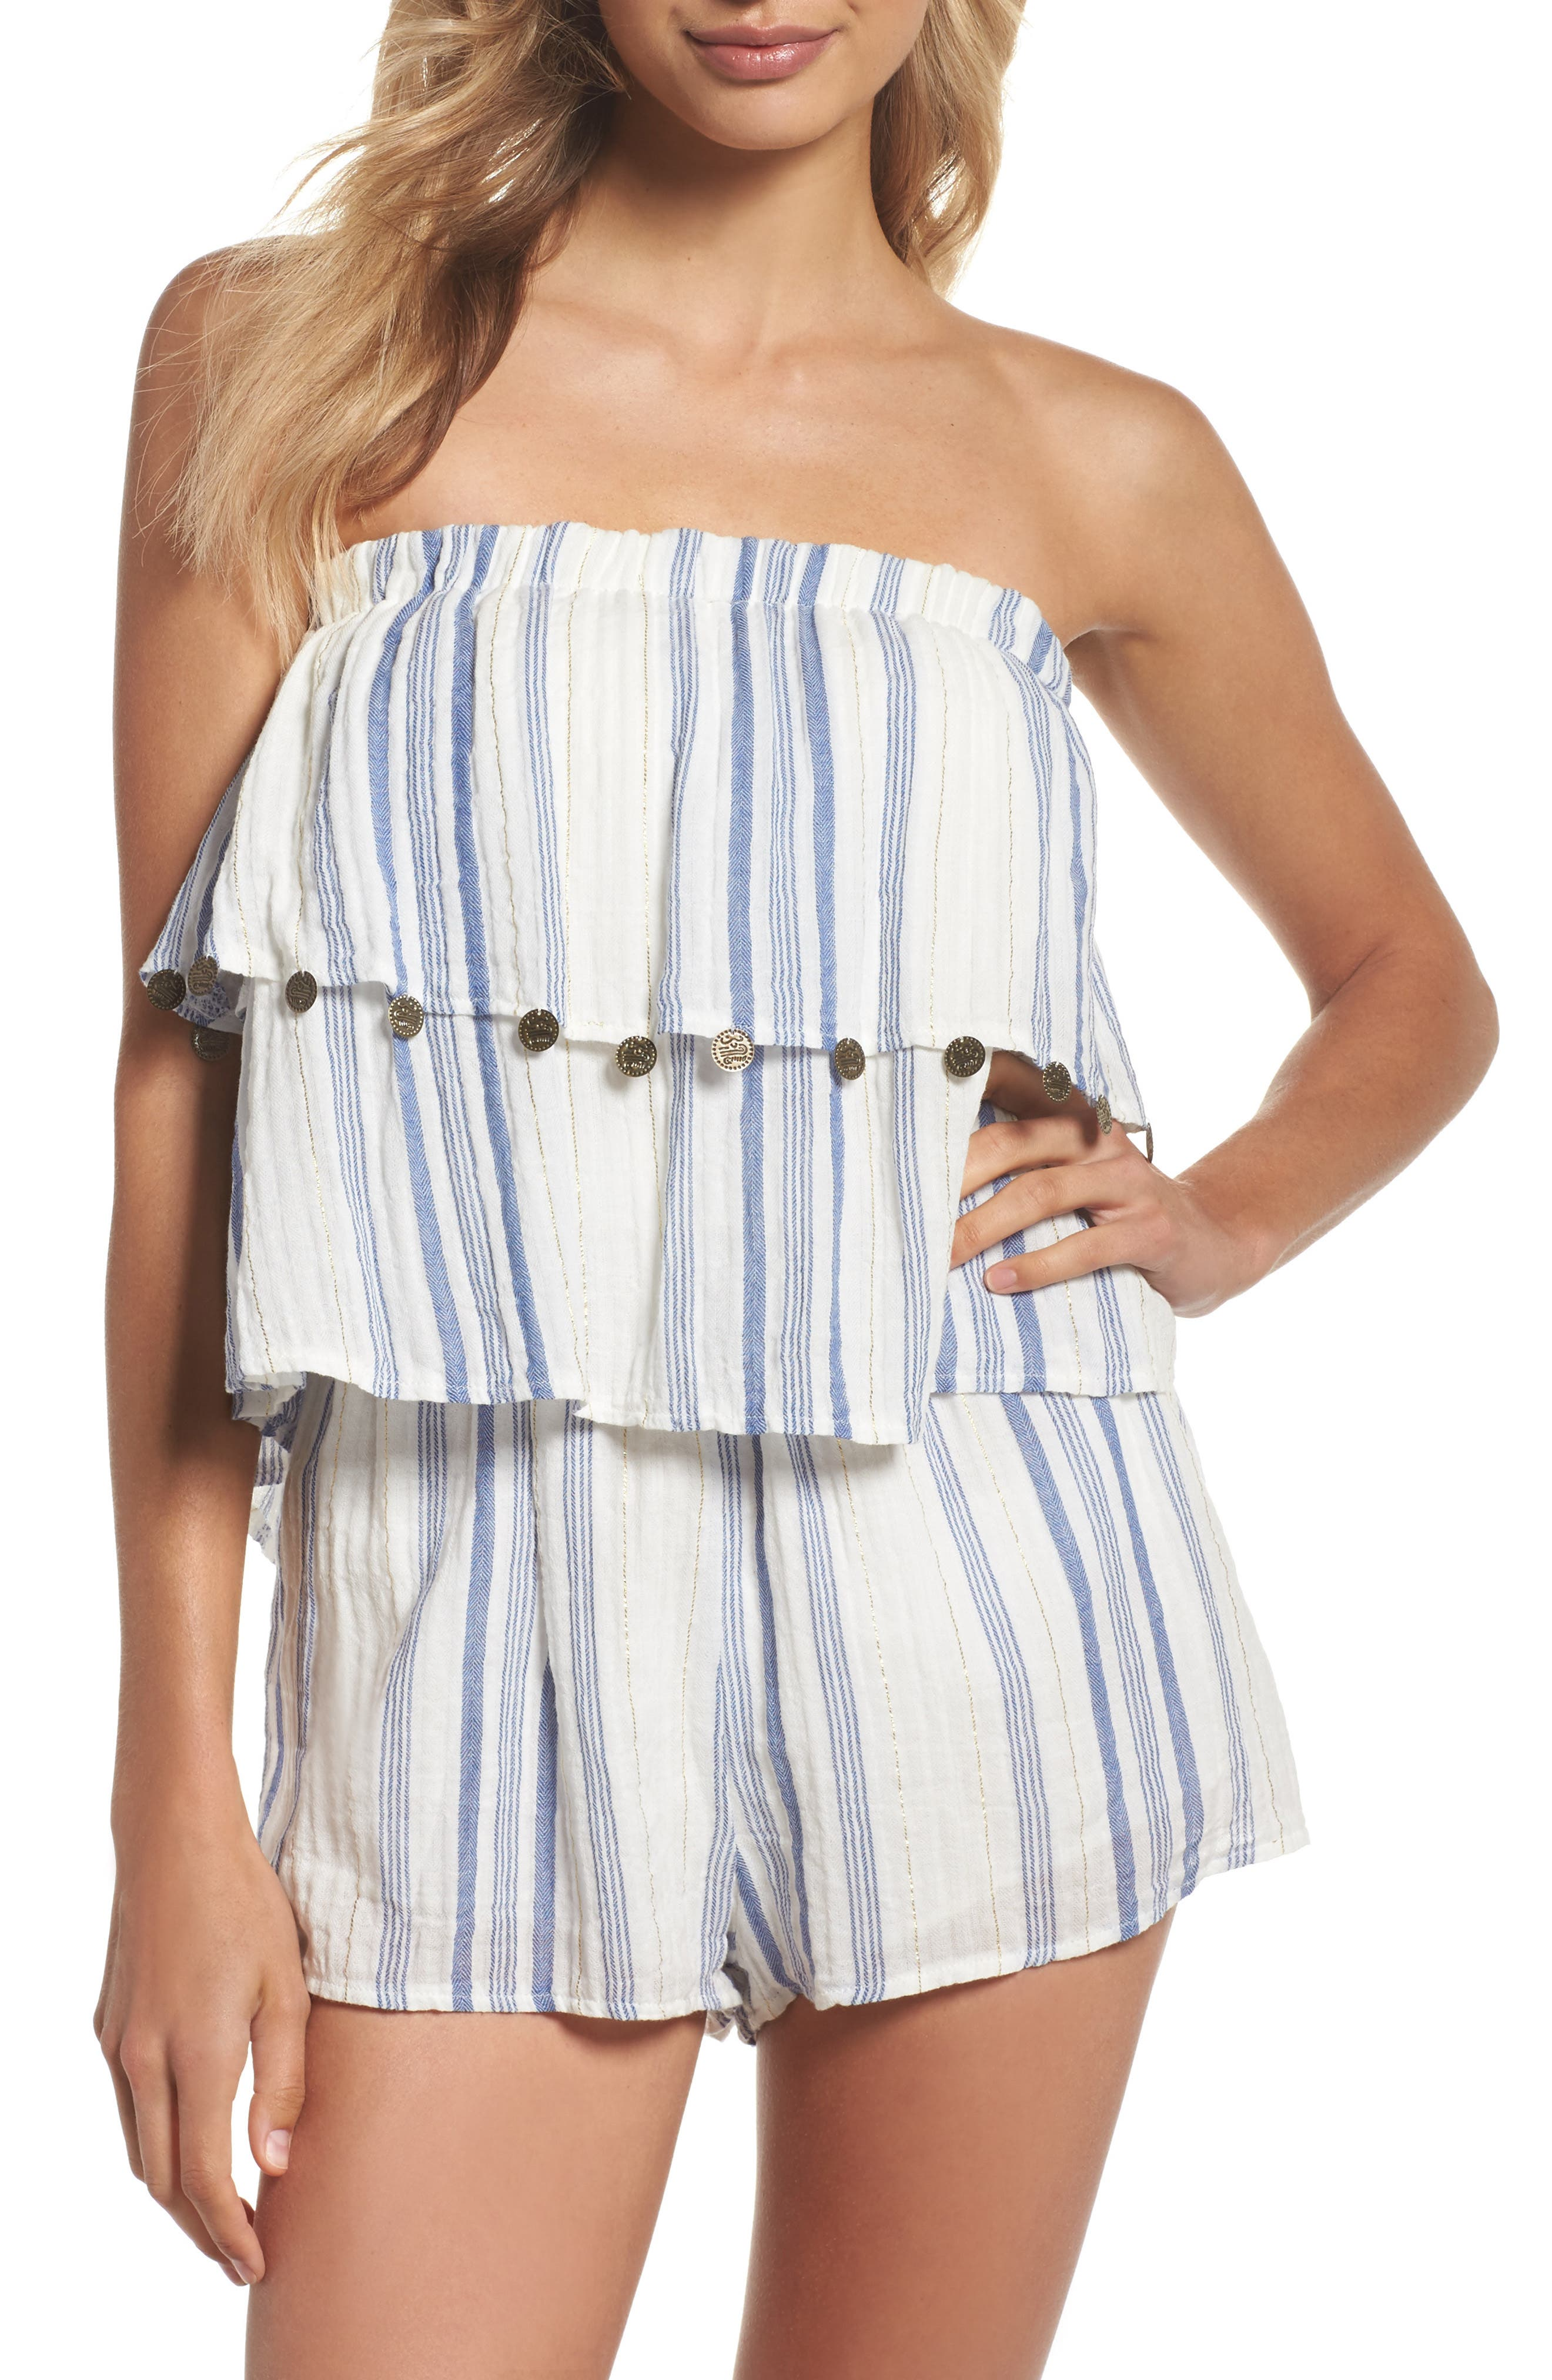 Alternate Image 1 Selected - Surf Gypsy Bali Cover-Up Romper